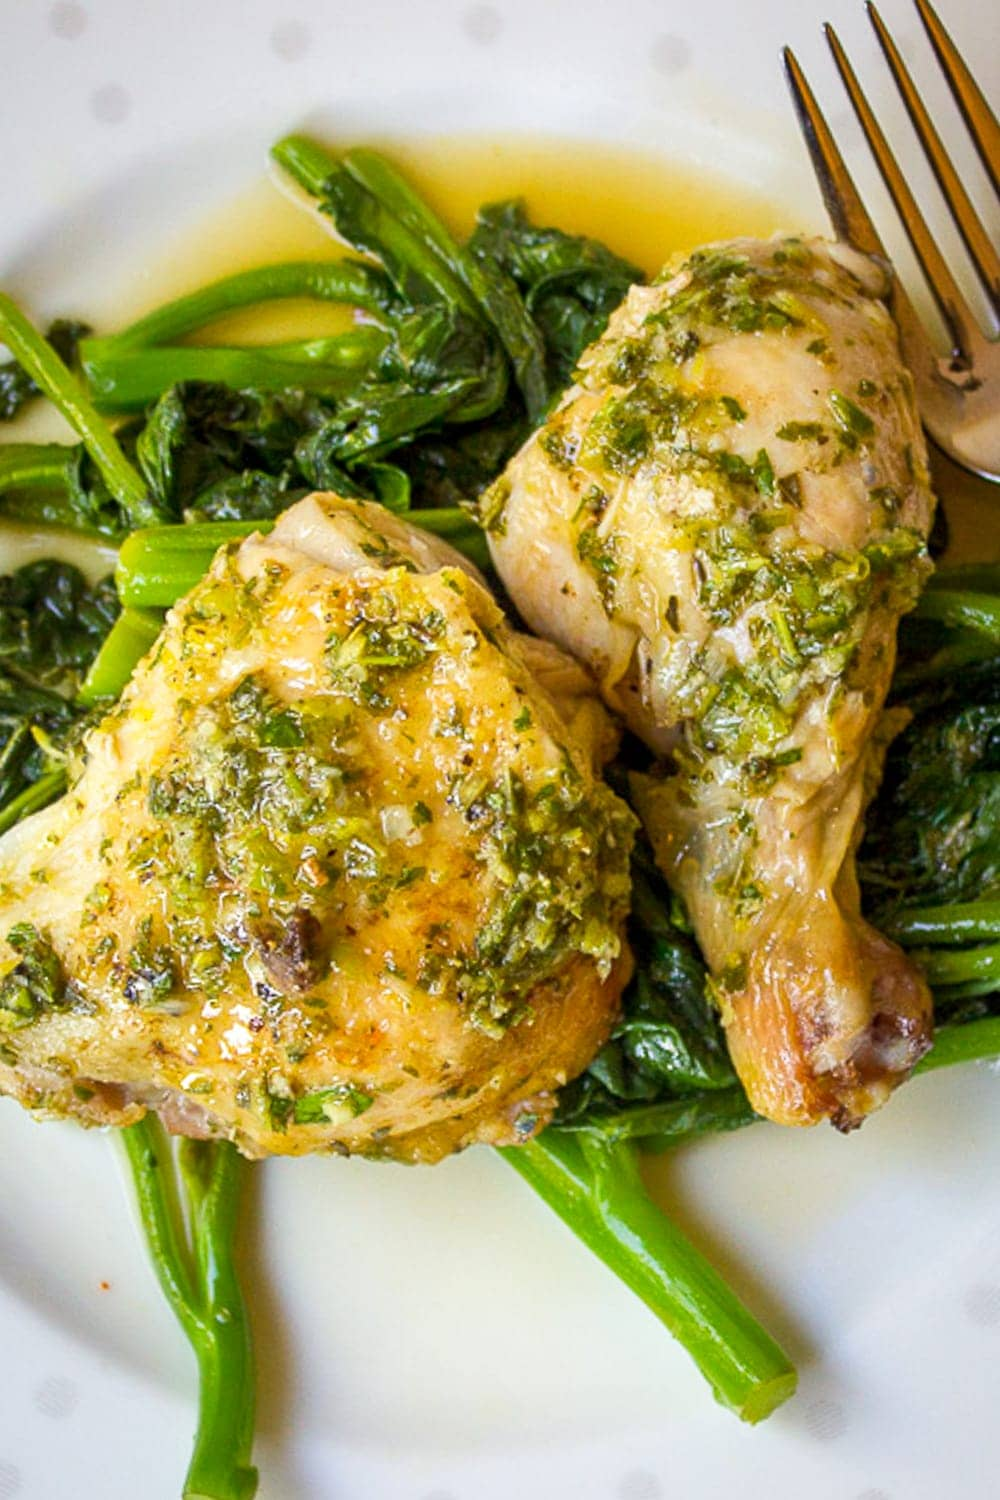 two pieces of lemon herb chicken over Chinese broccoli on a plate